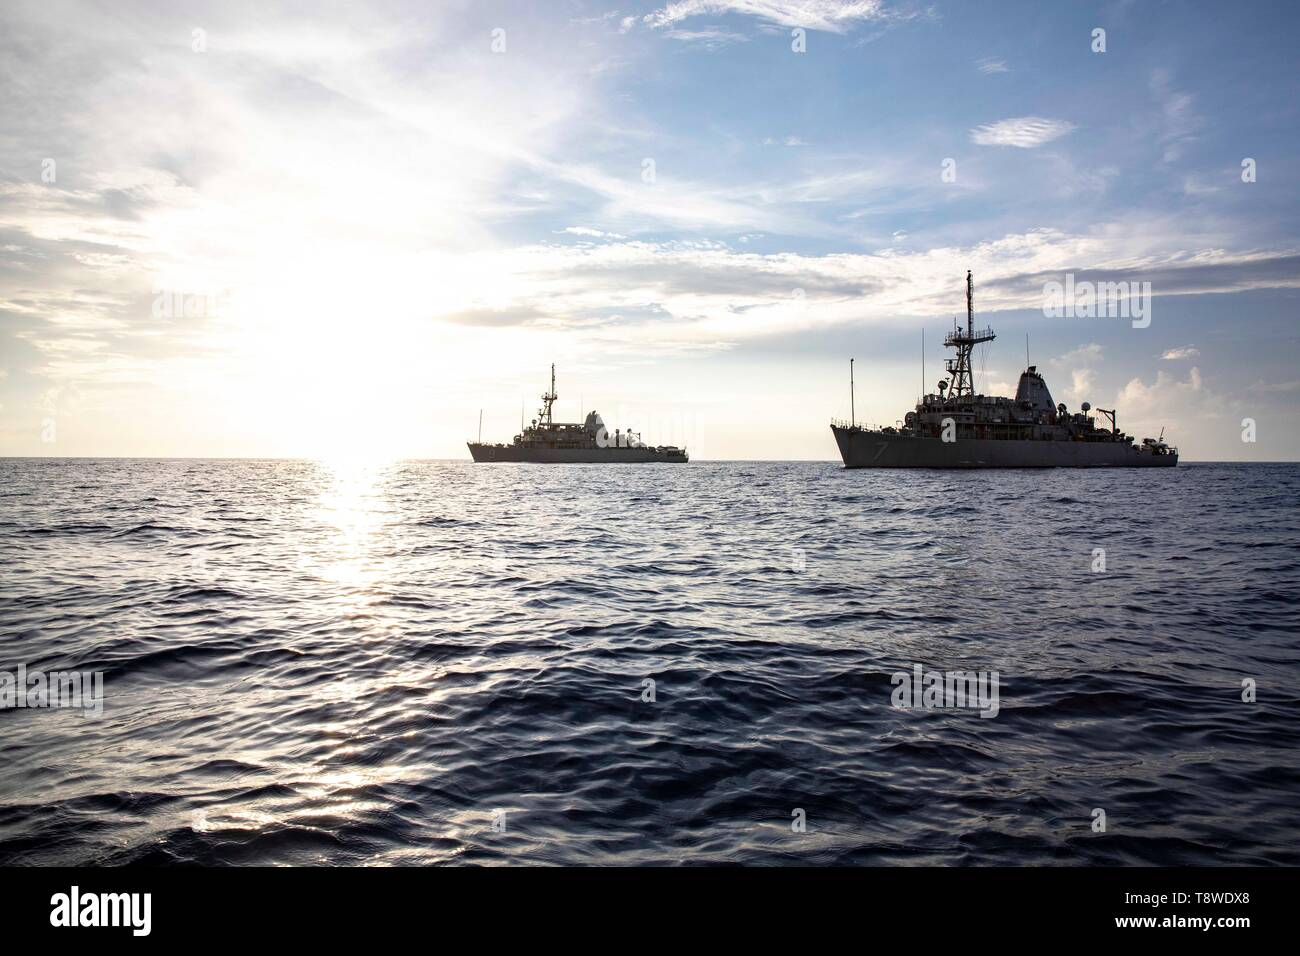 190508-N-AD347-1185 SOUTH CHINA SEA (May 8, 2019) The Avenger-class mine mine countermeasures ship USS Pioneer (MCM 9) and her sister ship USS Patriot (MCM 7) underway. Both Pioneer and Patriot, part of Mine Countermeasures Squadron 7, are operating in the U.S. 7th Fleet area of operations to enhance interoperability with partners and serve as a ready-response platform for contingency operations. (U.S. Navy photo by Lt. j.g. Alexander Fairbanks) - Stock Image